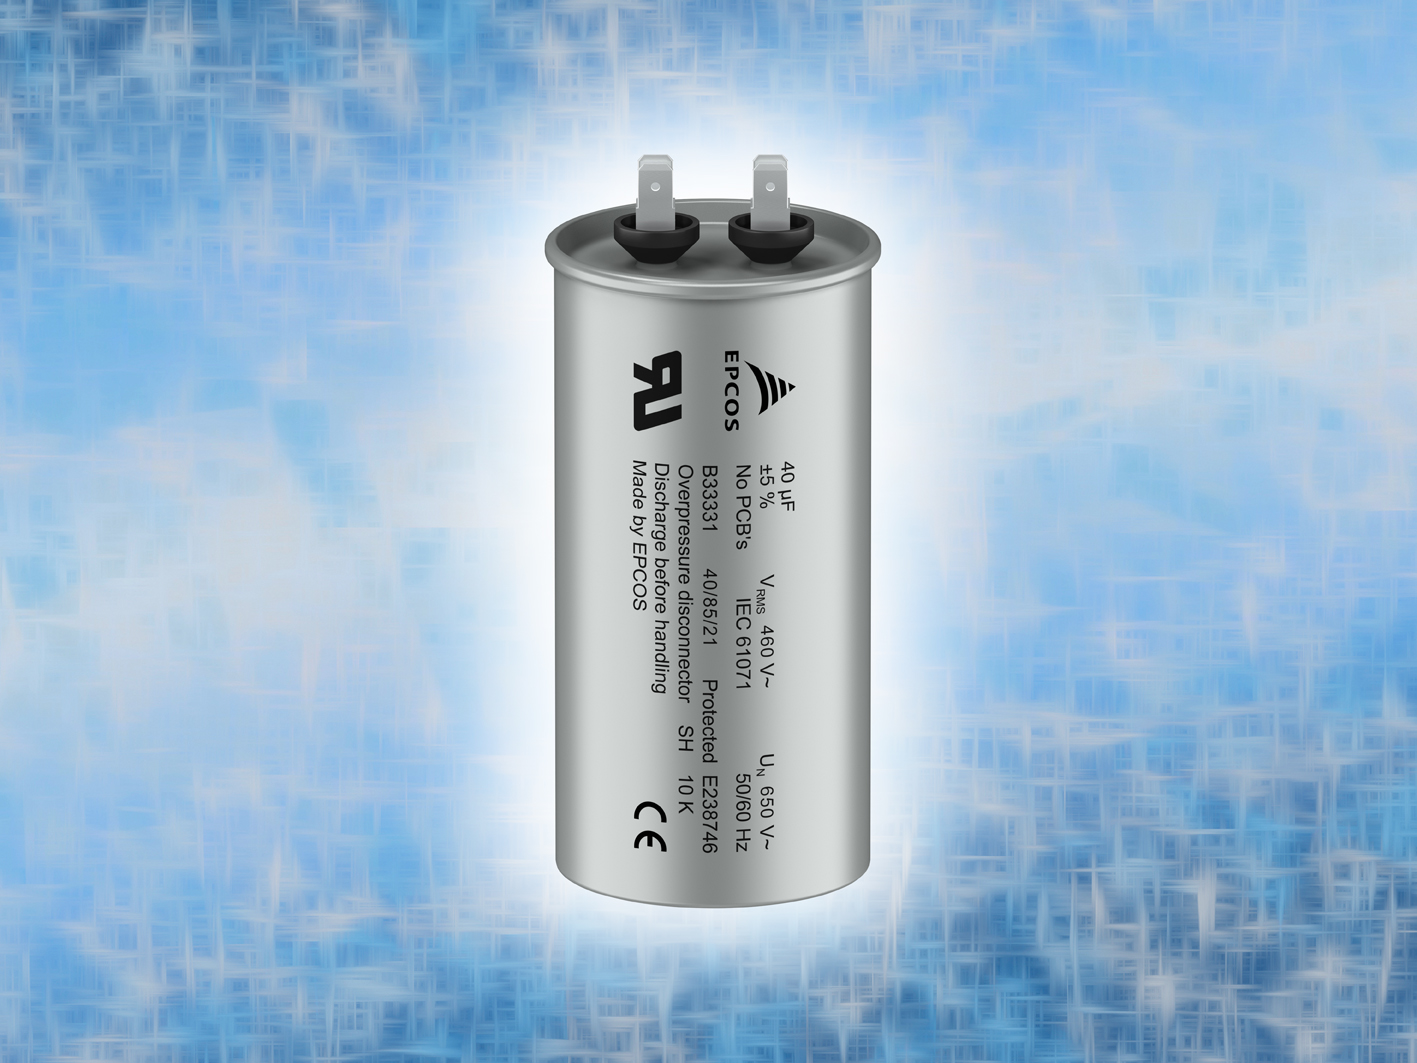 AC Filter Capacitors Include a Peak Voltage of 650 V